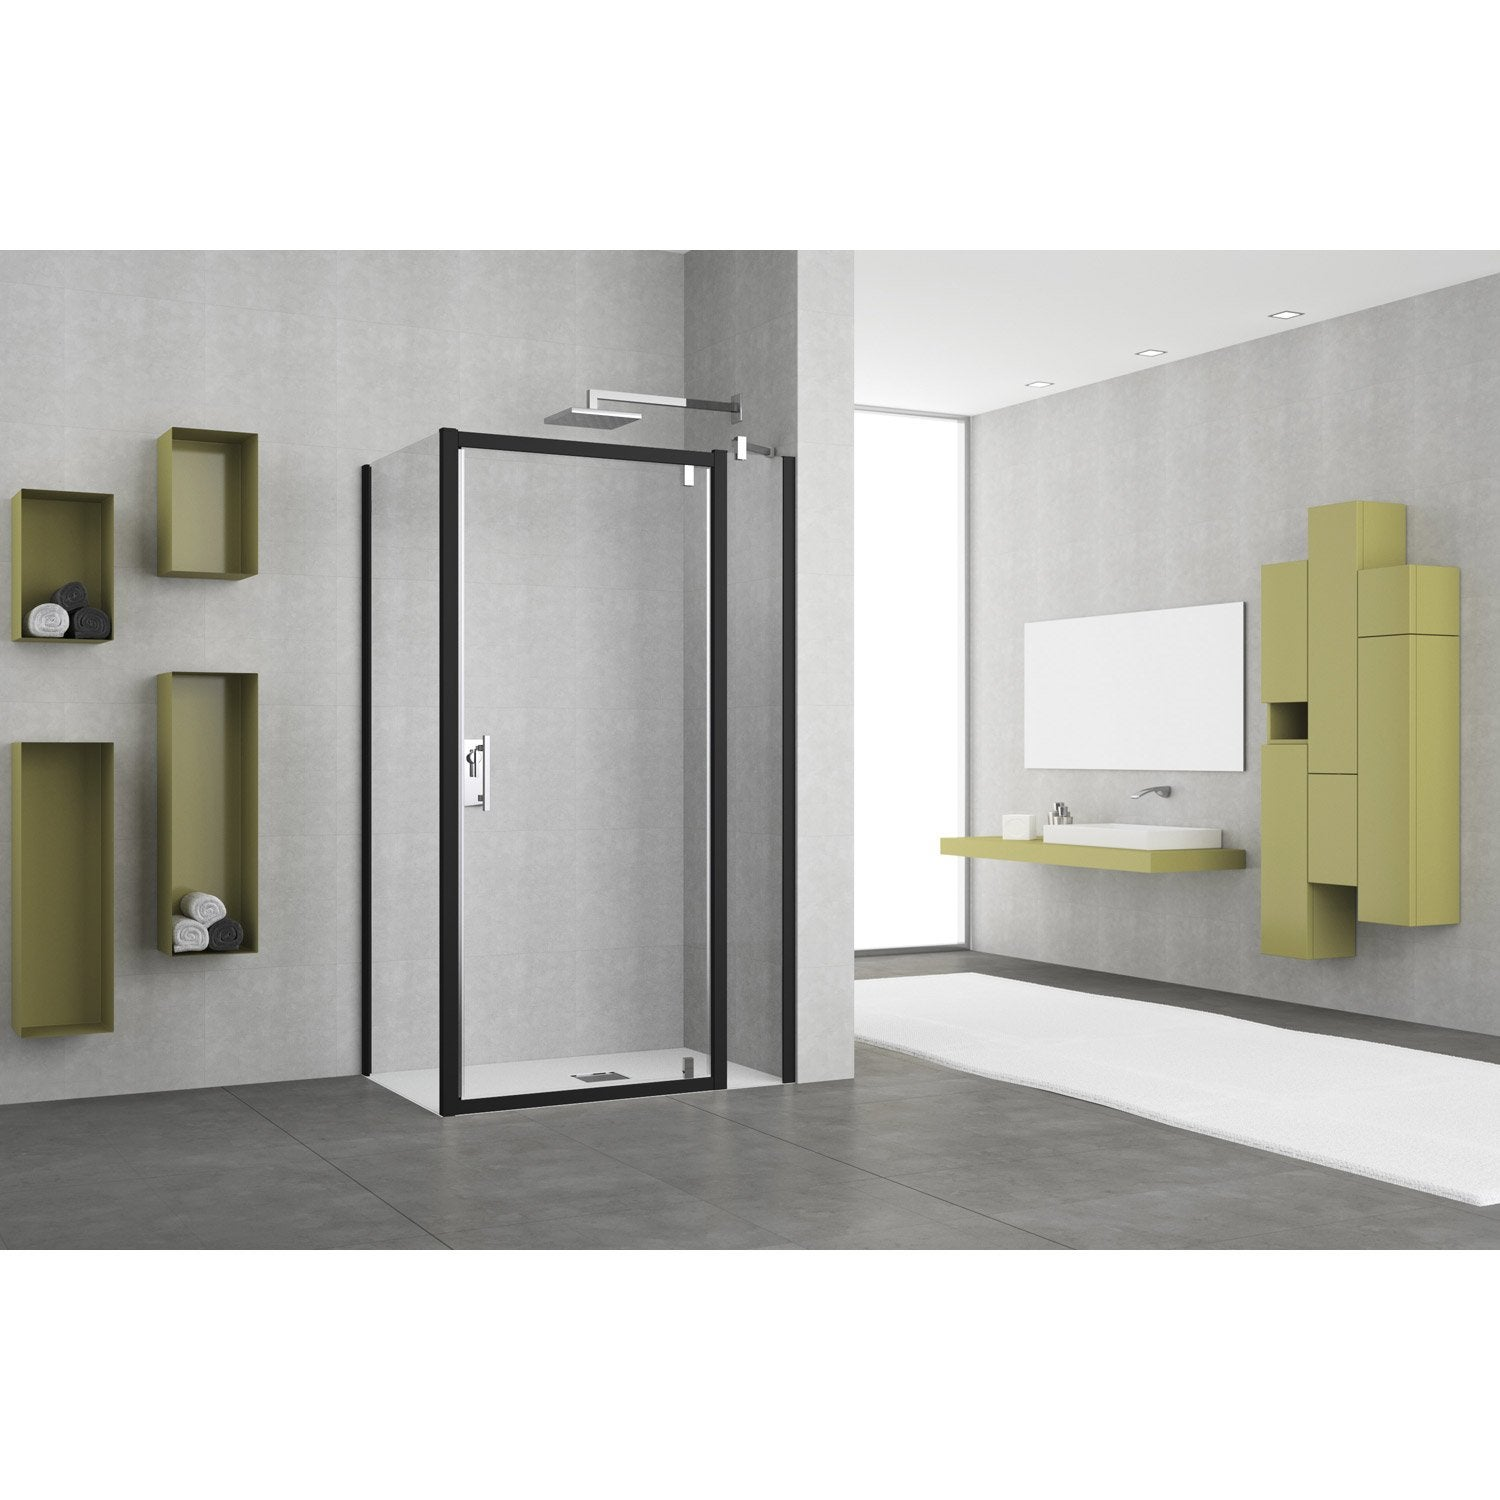 porte de douche pivotante 84 90 cm profil noir elyt. Black Bedroom Furniture Sets. Home Design Ideas